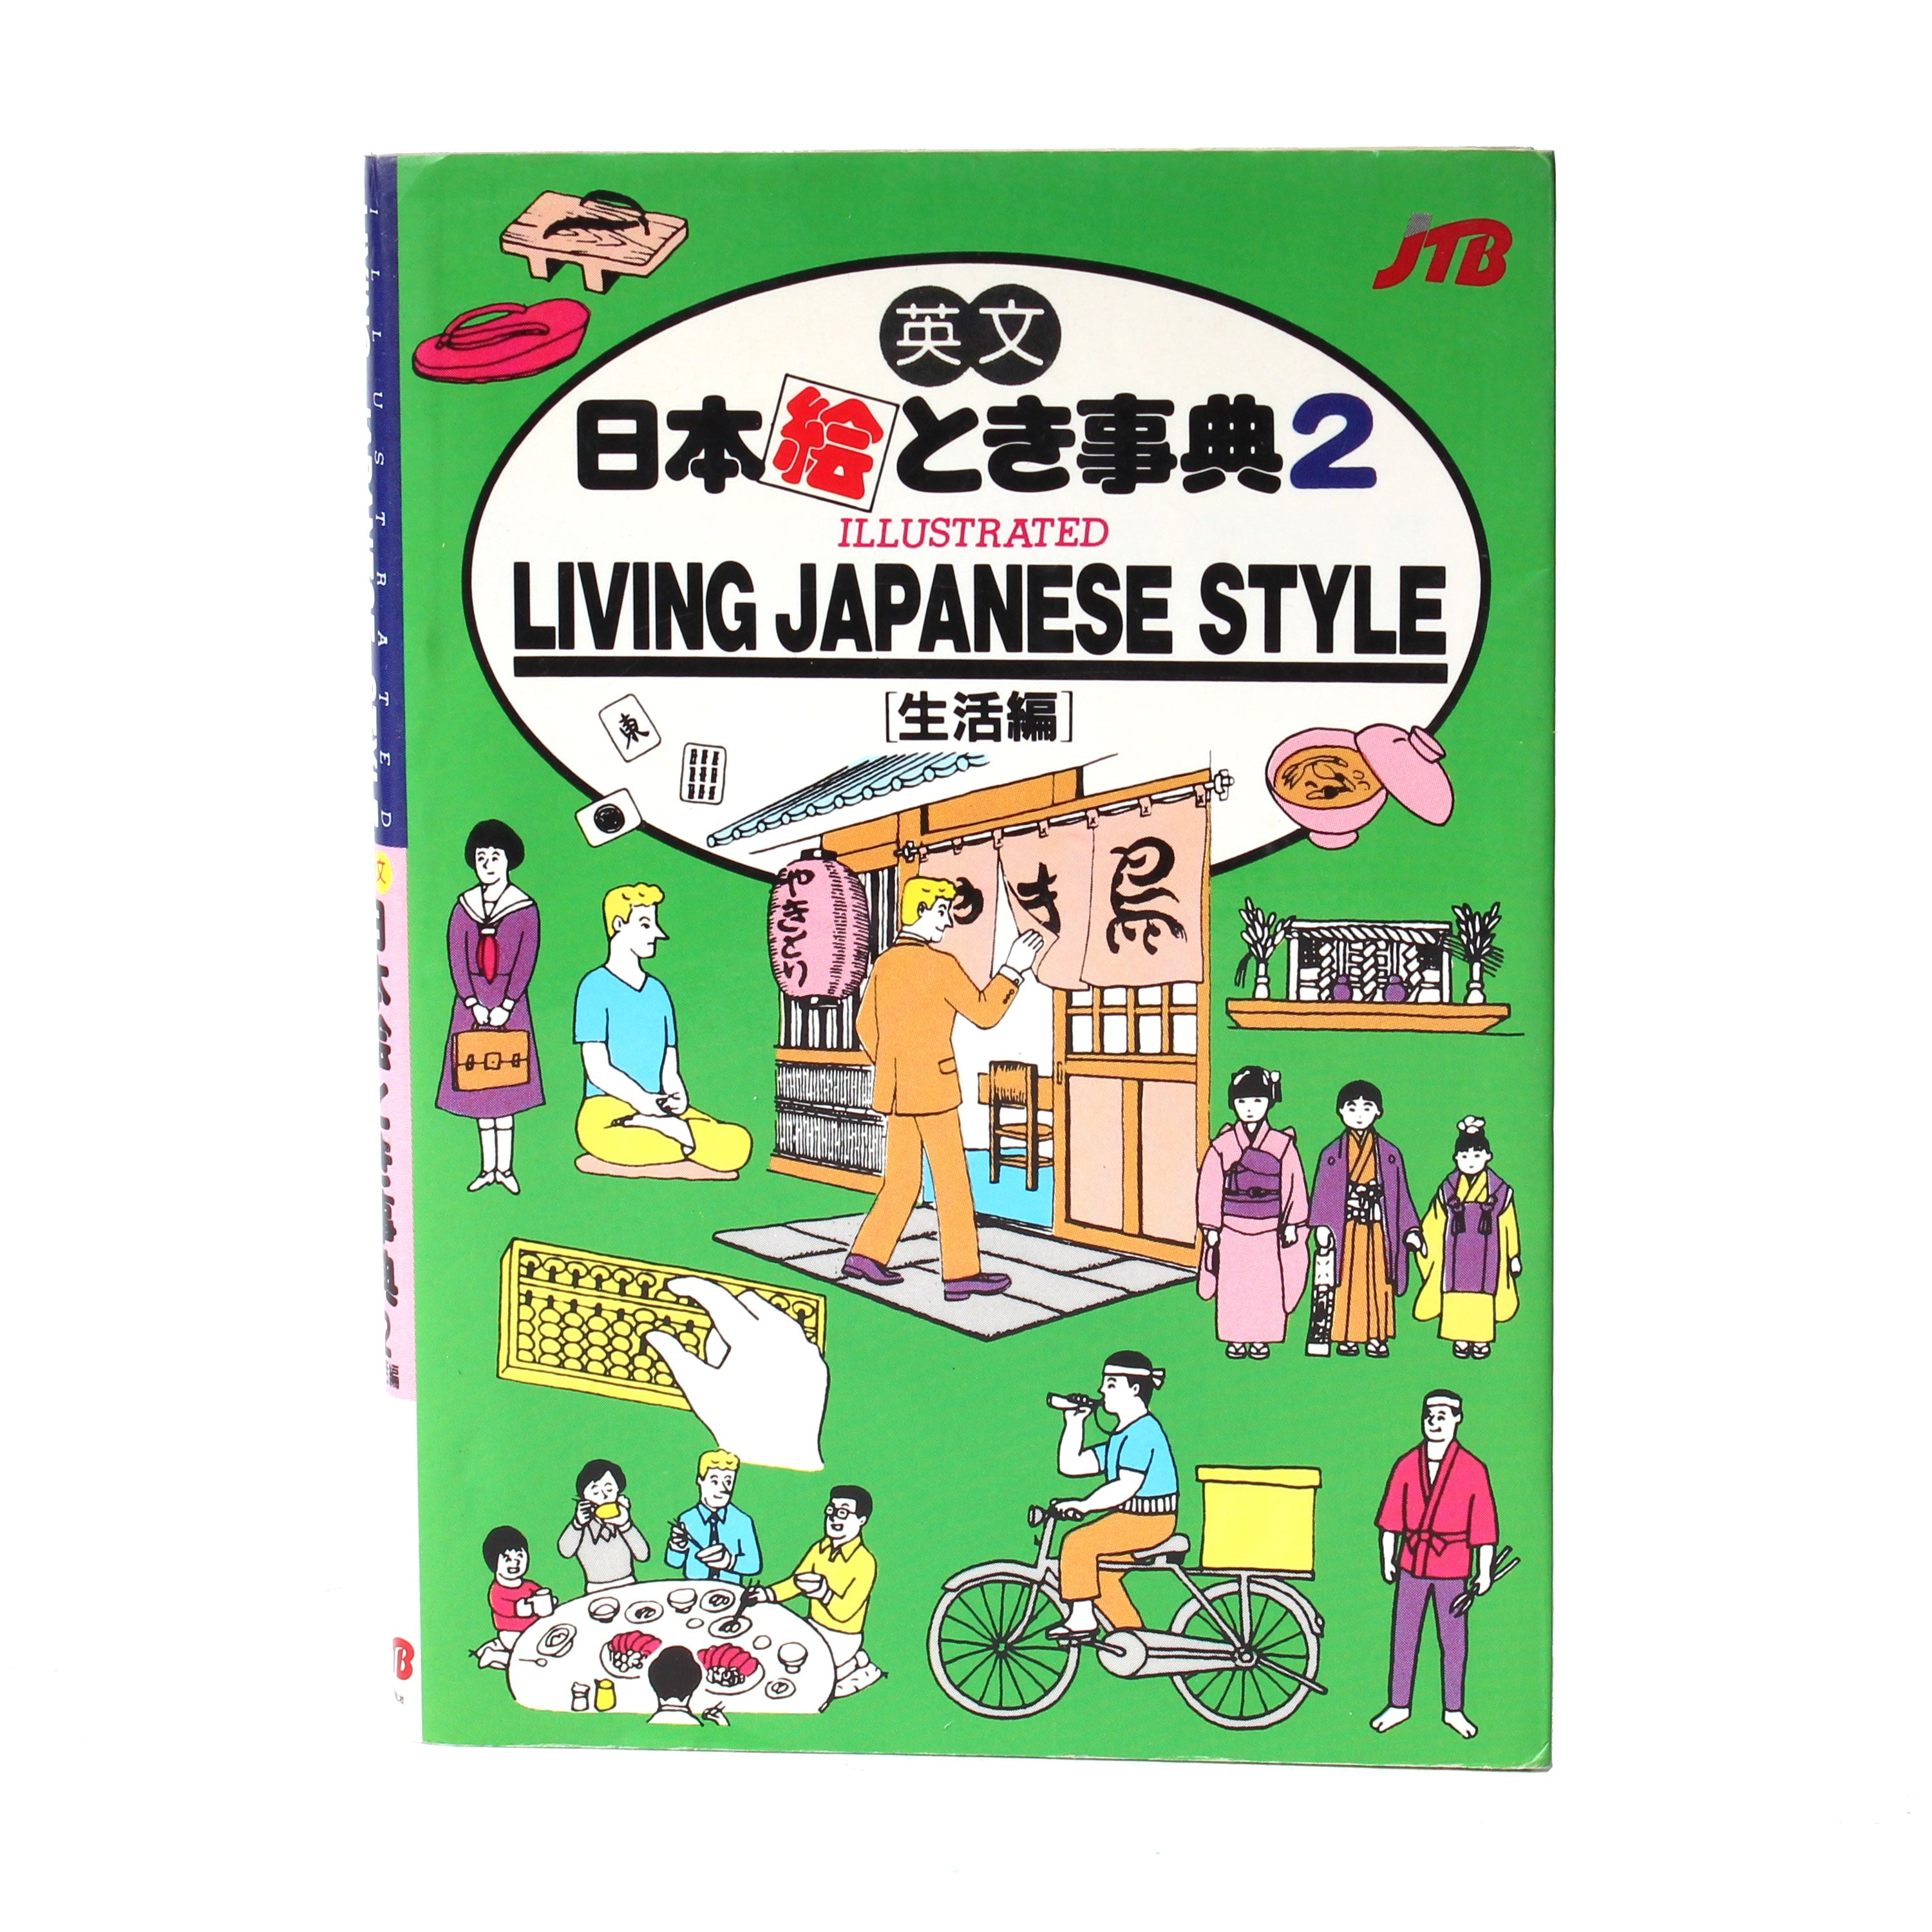 Living Japanese Style, 1984